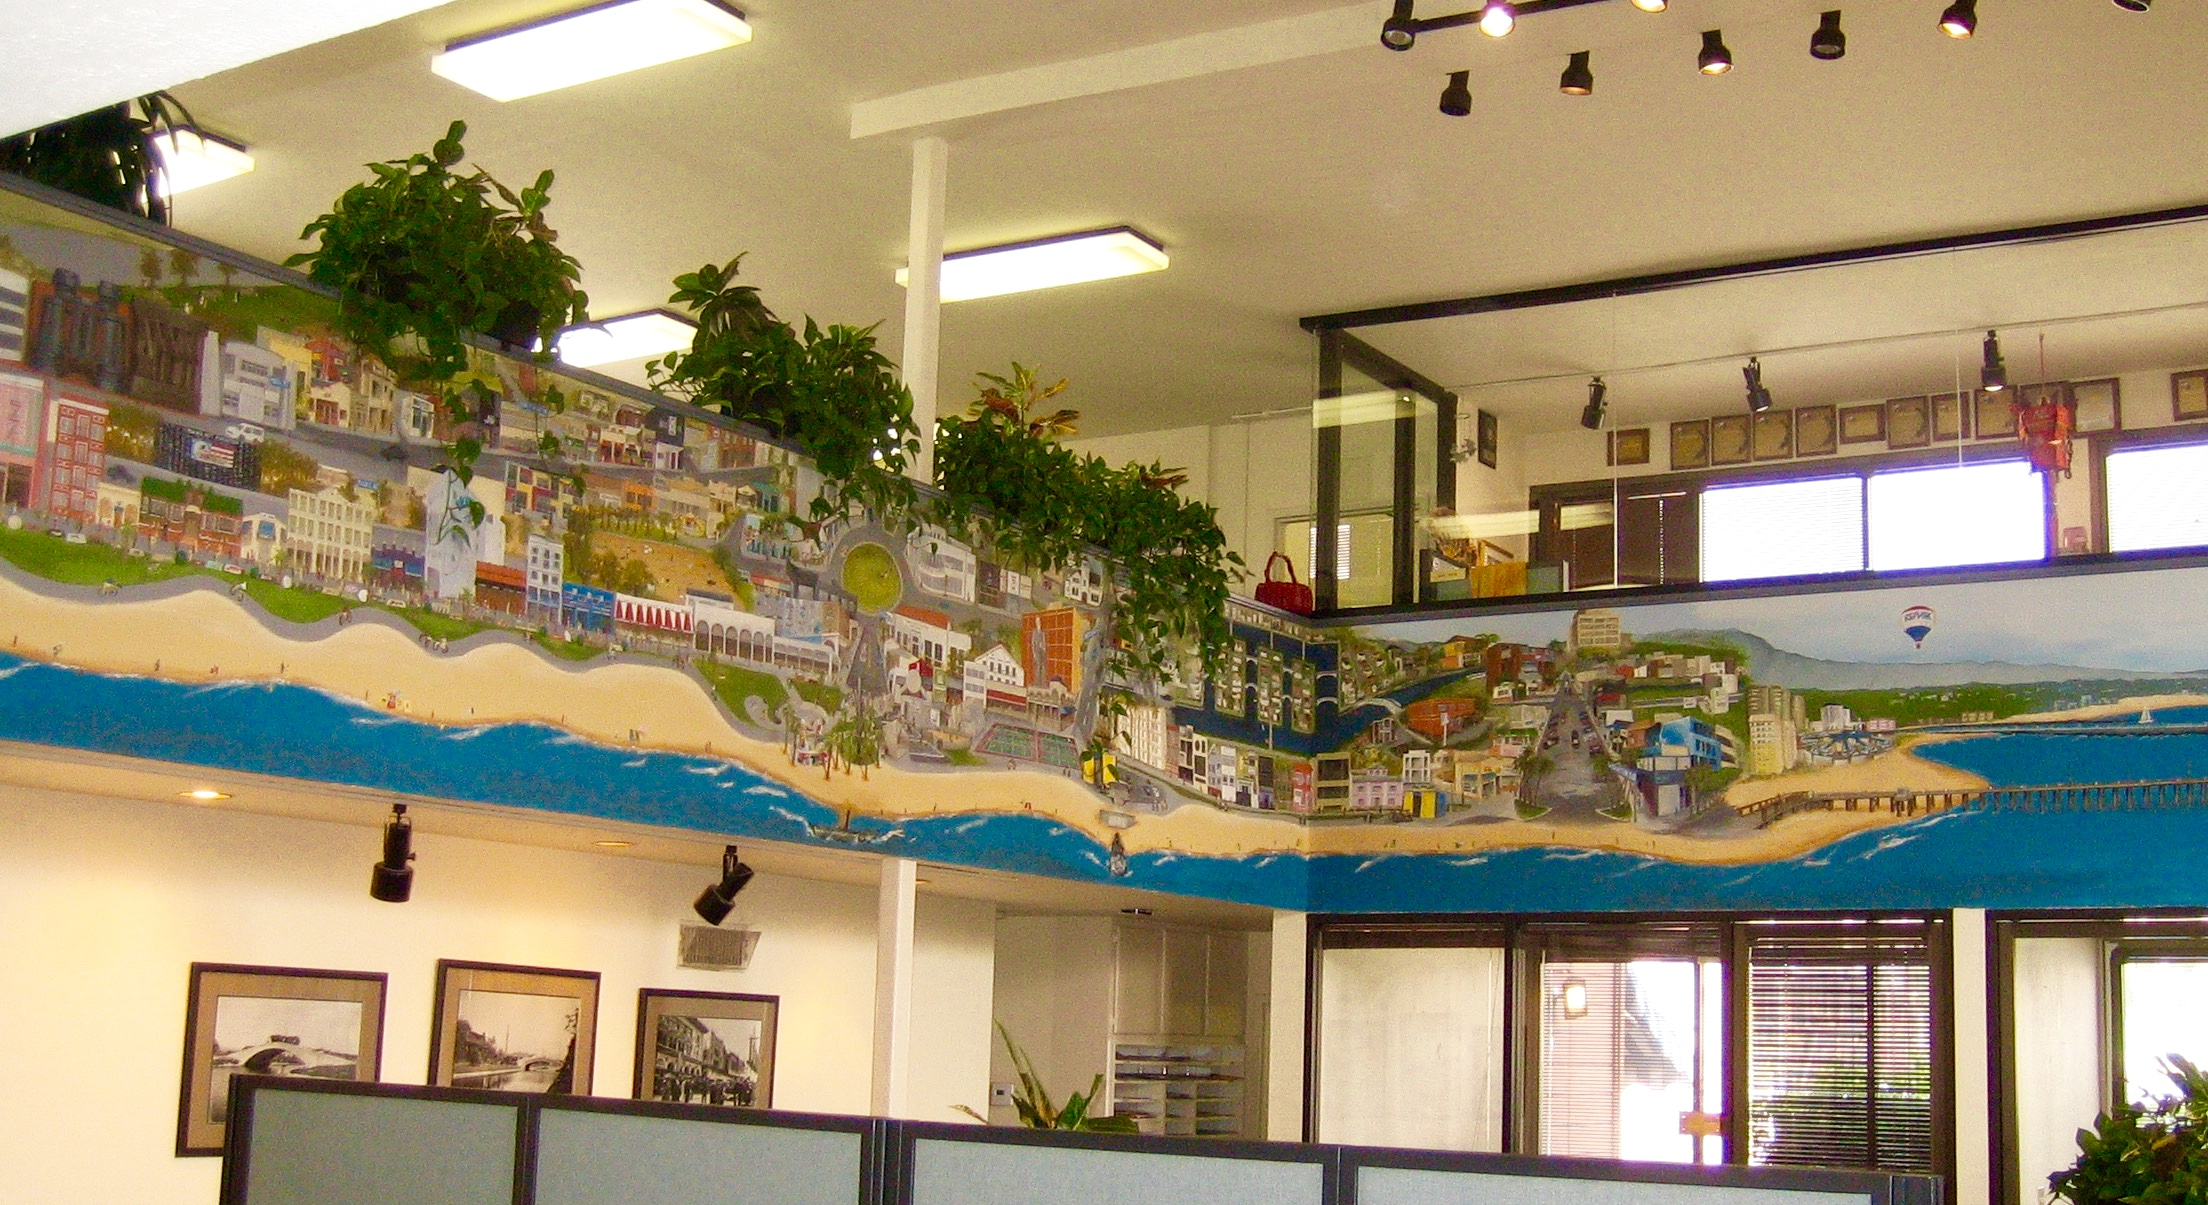 Mural of Venice, CA in RE/MAX Realty Office